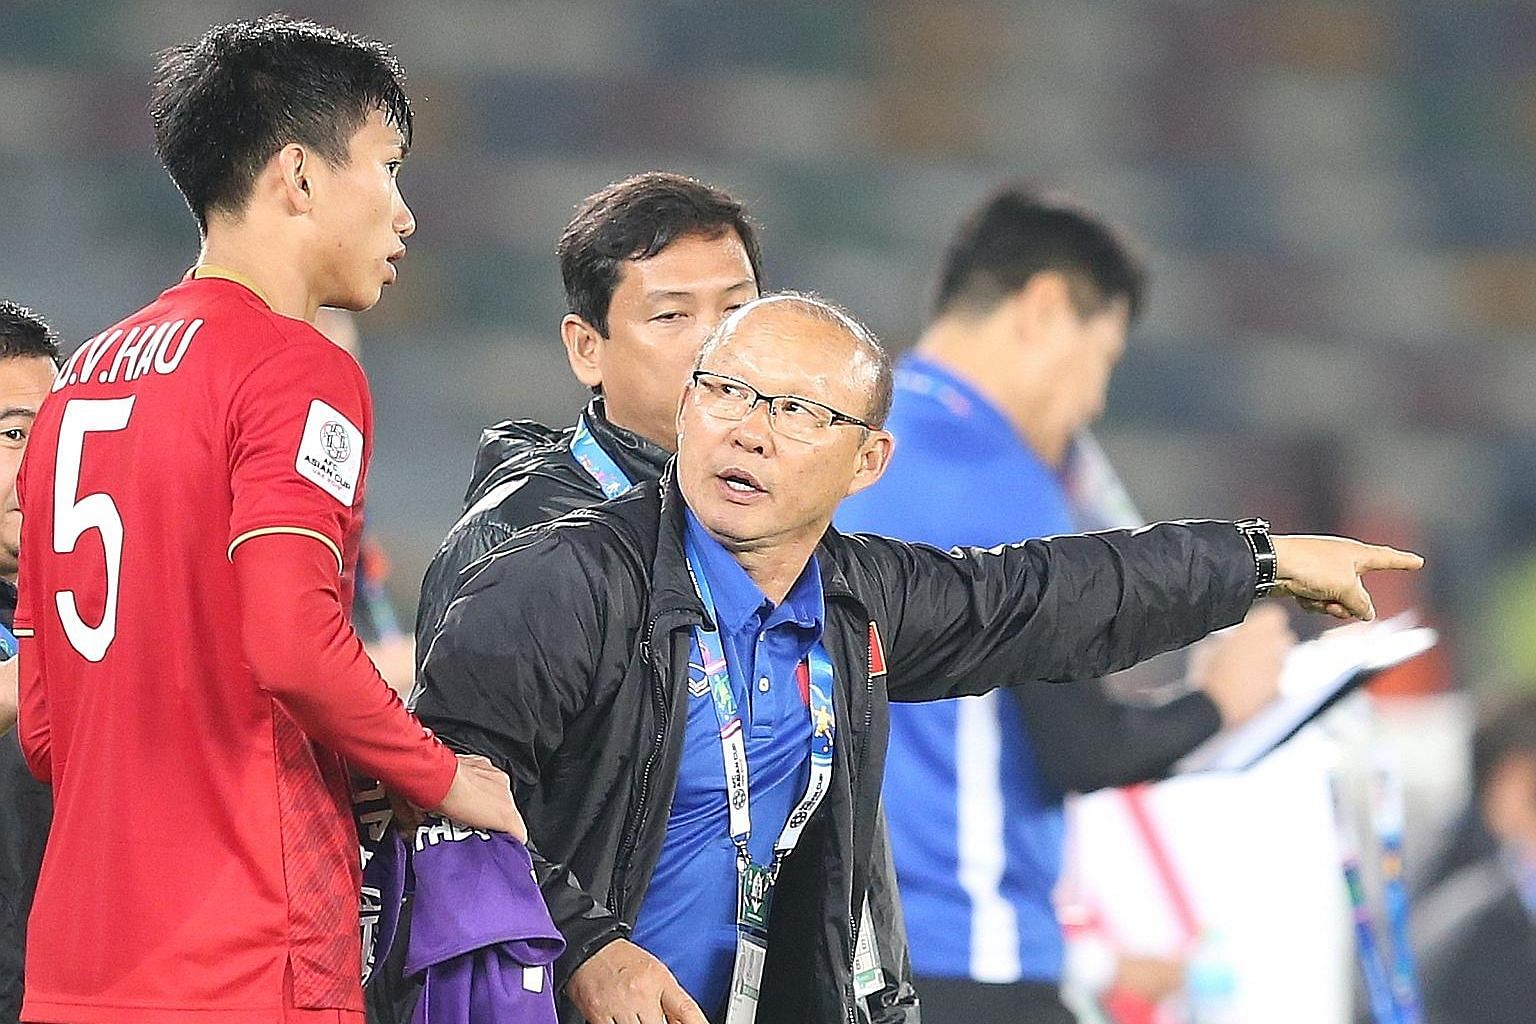 Vietnamese football fans cheering their national team in an AFF Suzuki Cup semi-final match, with one of them seen here sporting an image of head coach Park Hang-seo on his body as he celebrates victory with others.